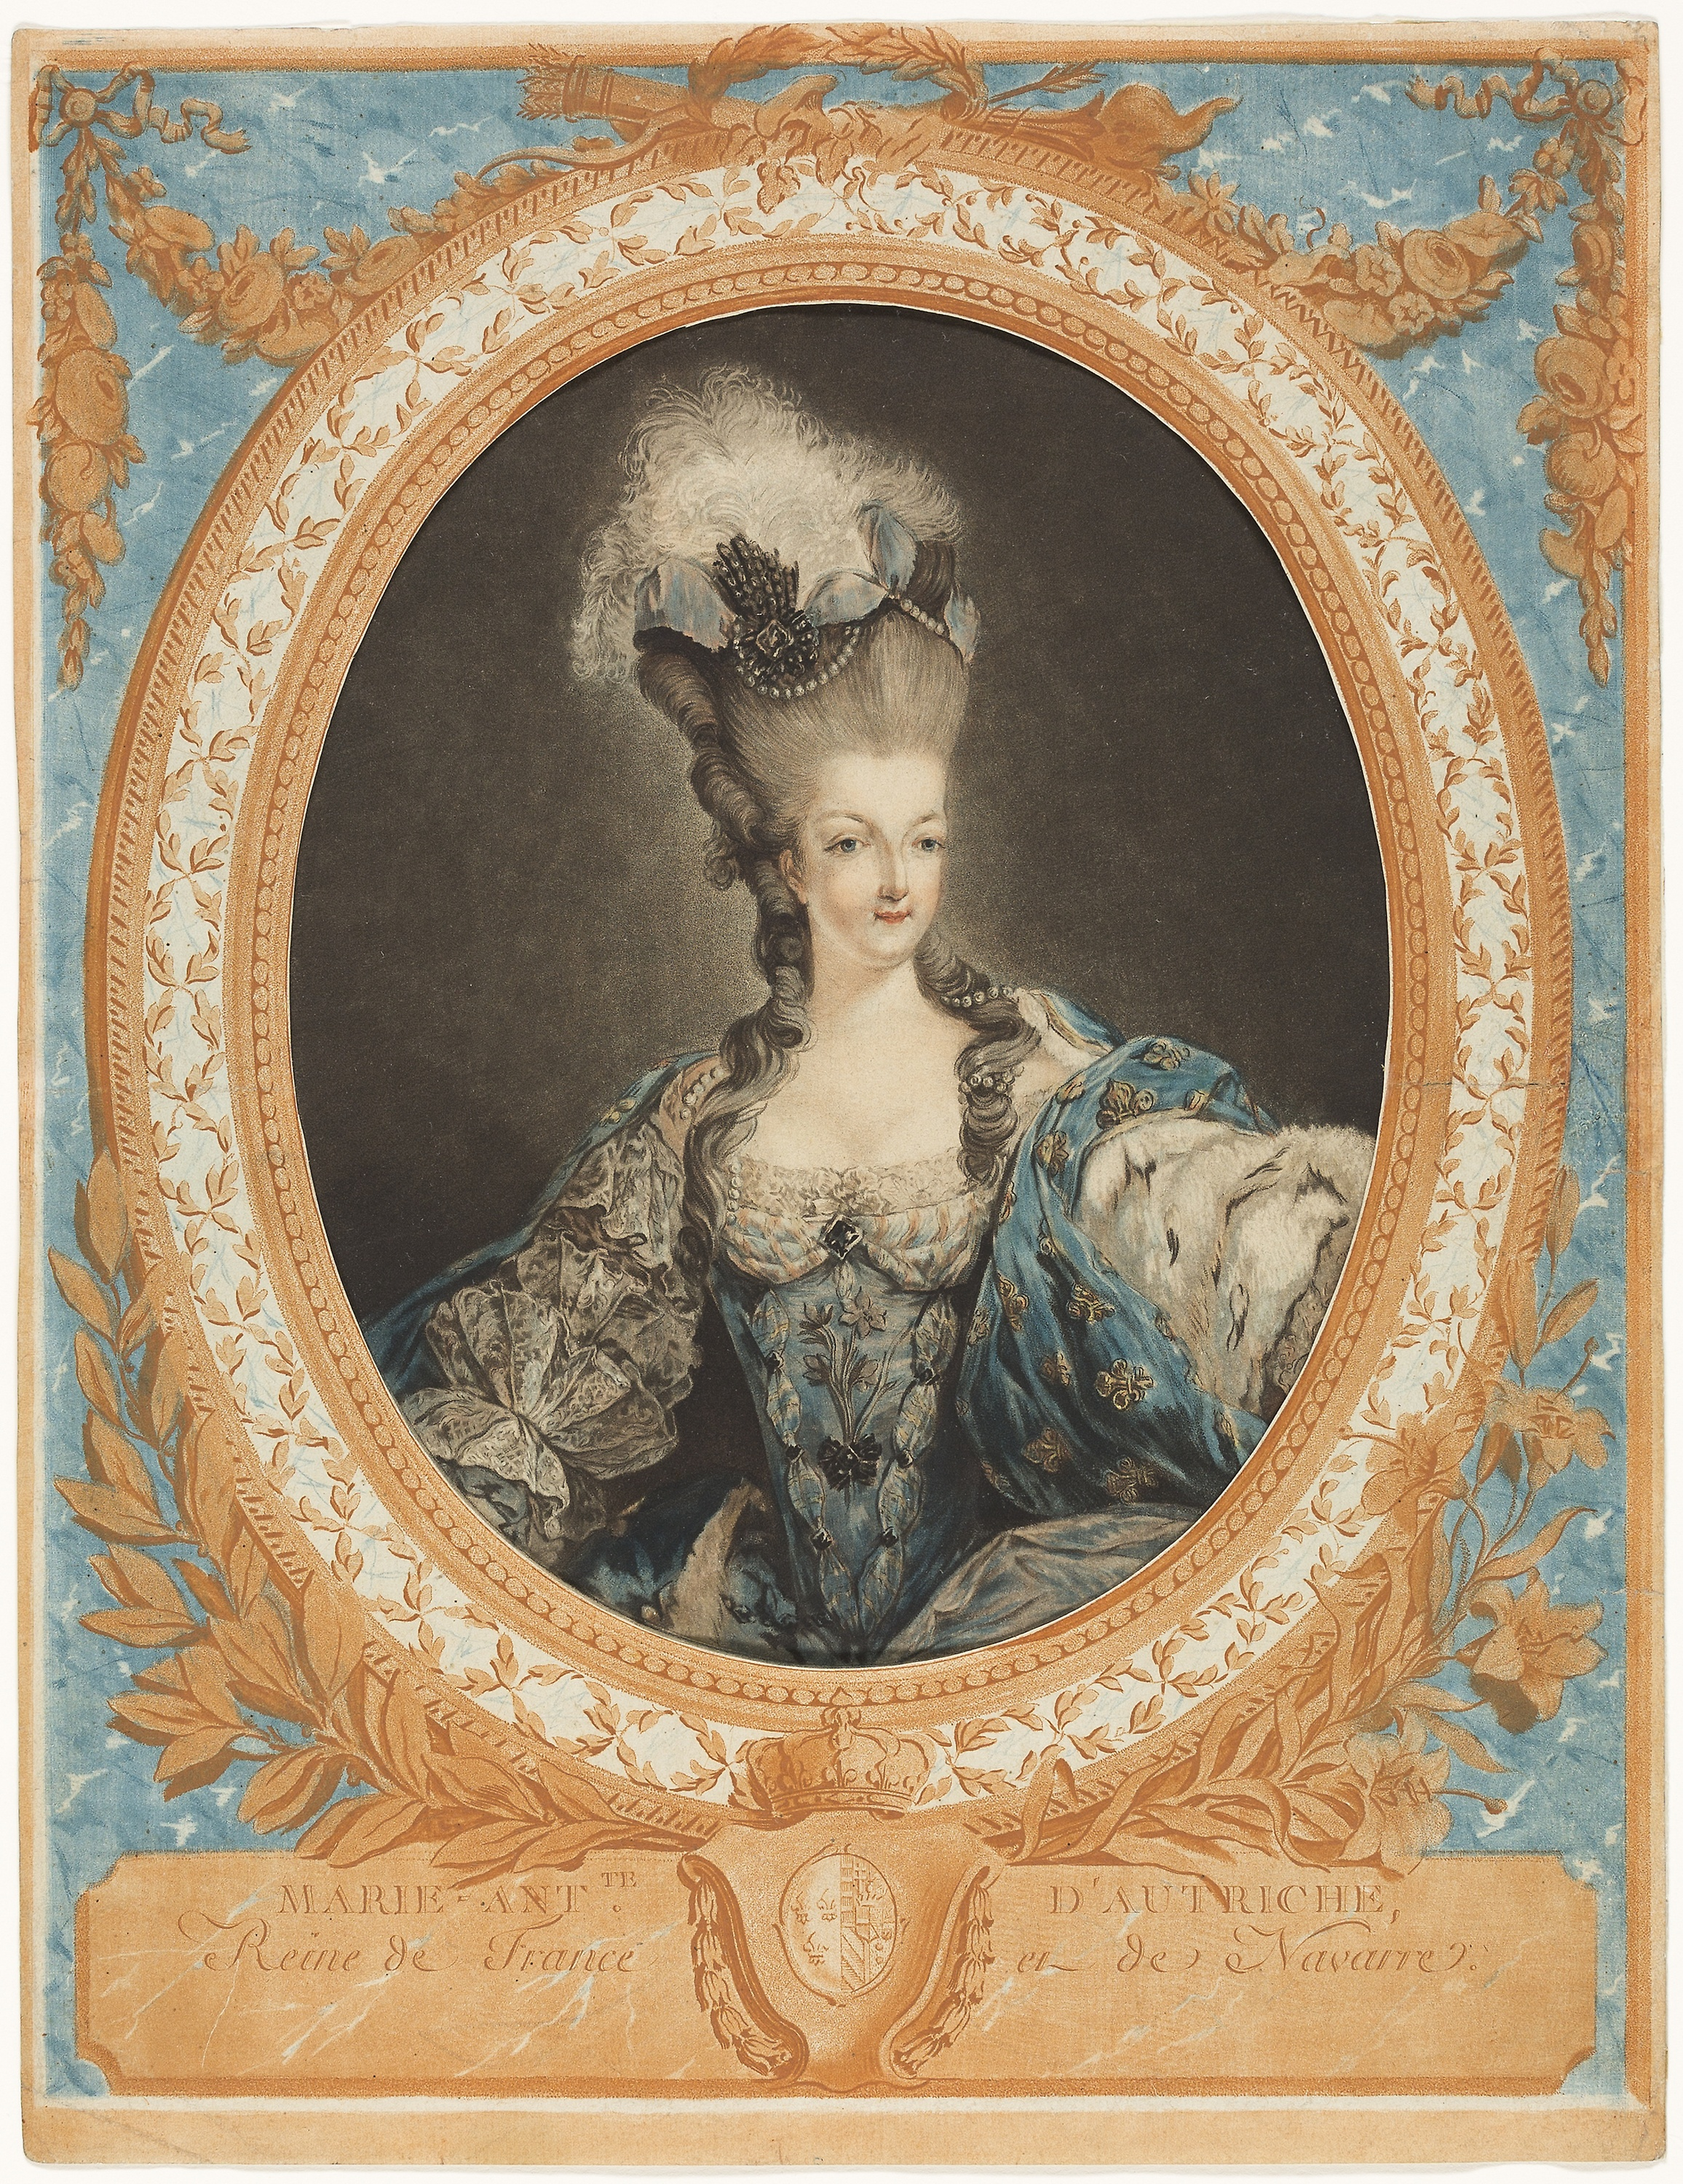 Sotheby's will auction a collection including several pieces of jewelry once belonging to Marie Antoinette.